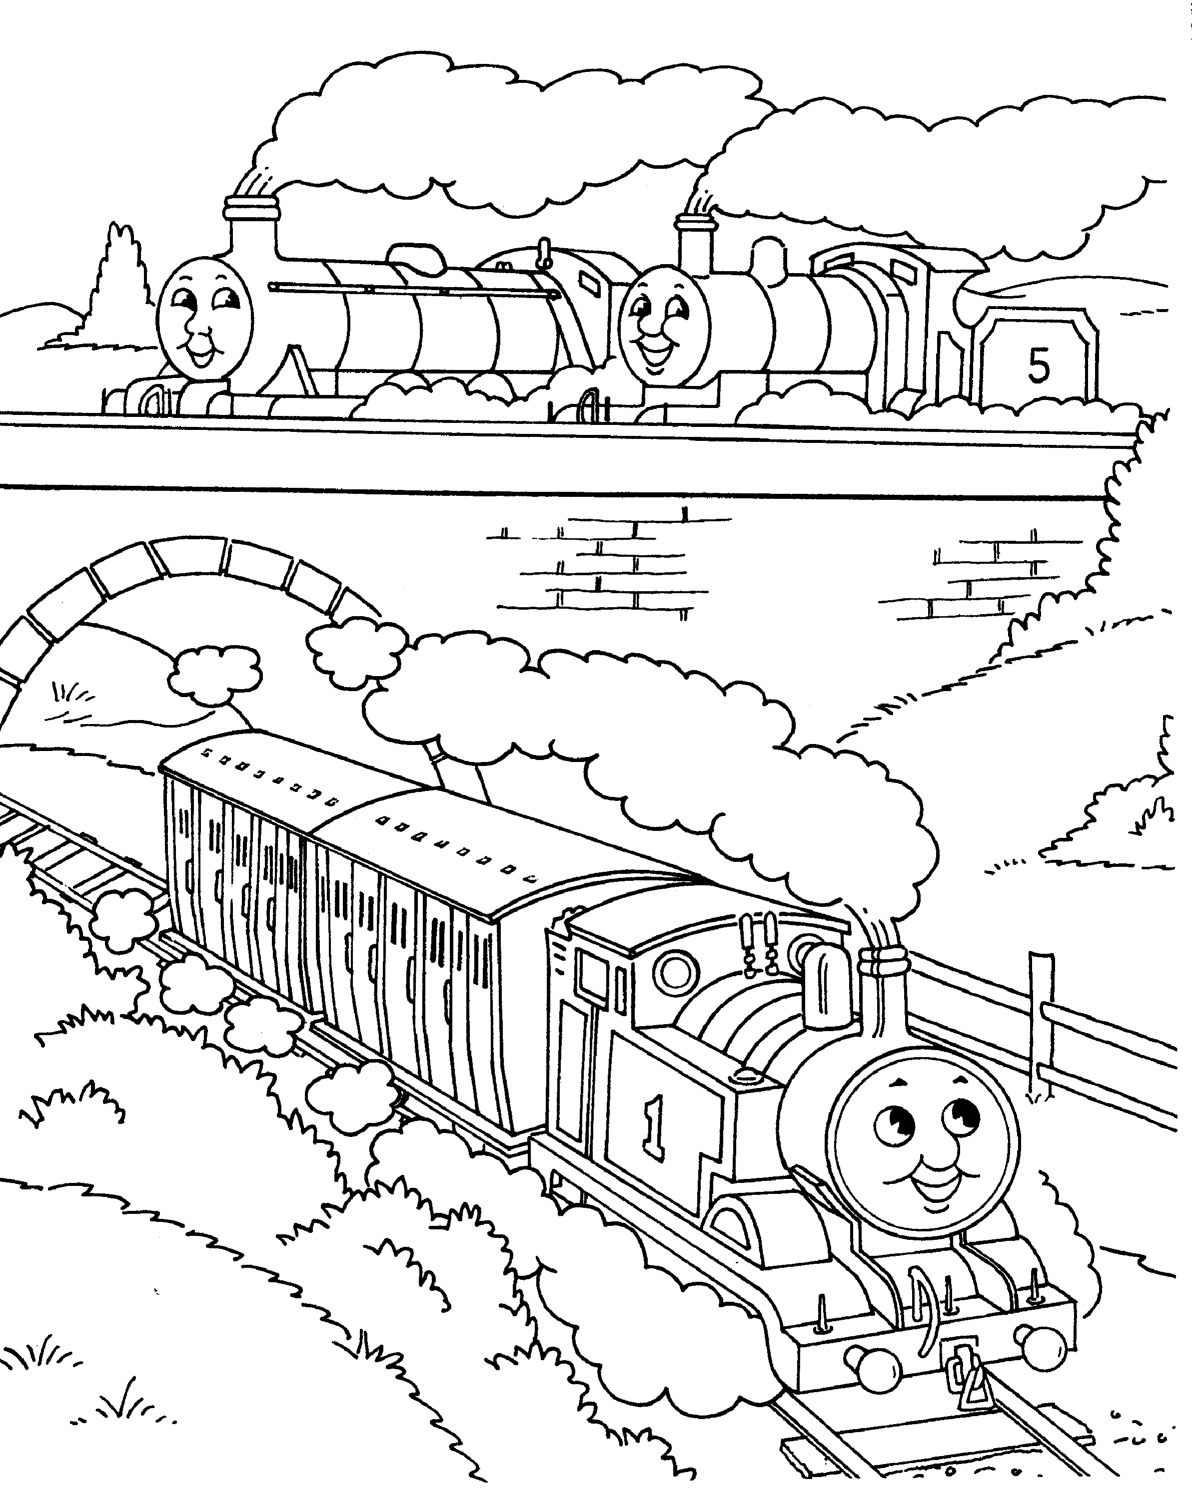 Thomas the train coloring pages coloring pages for Printable thomas the train coloring pages